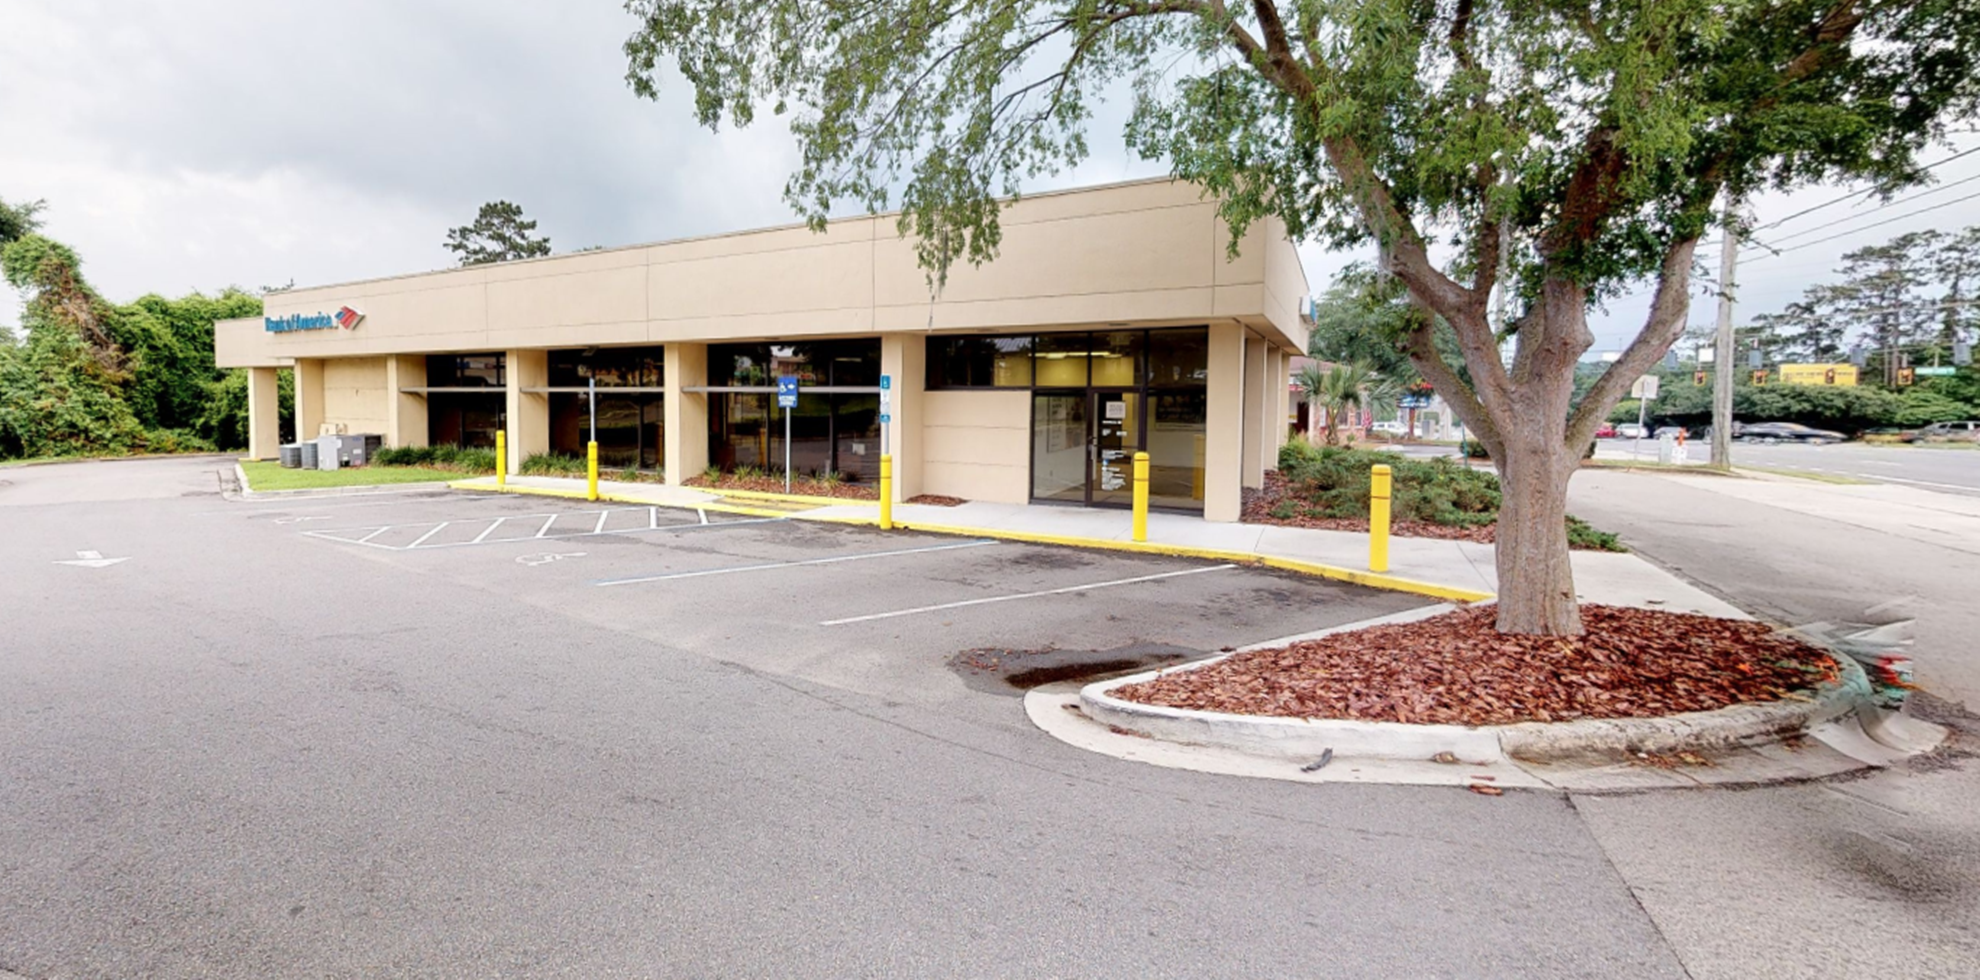 Bank of America financial center with drive-thru ATM | 3003 Mahan Dr, Tallahassee, FL 32308